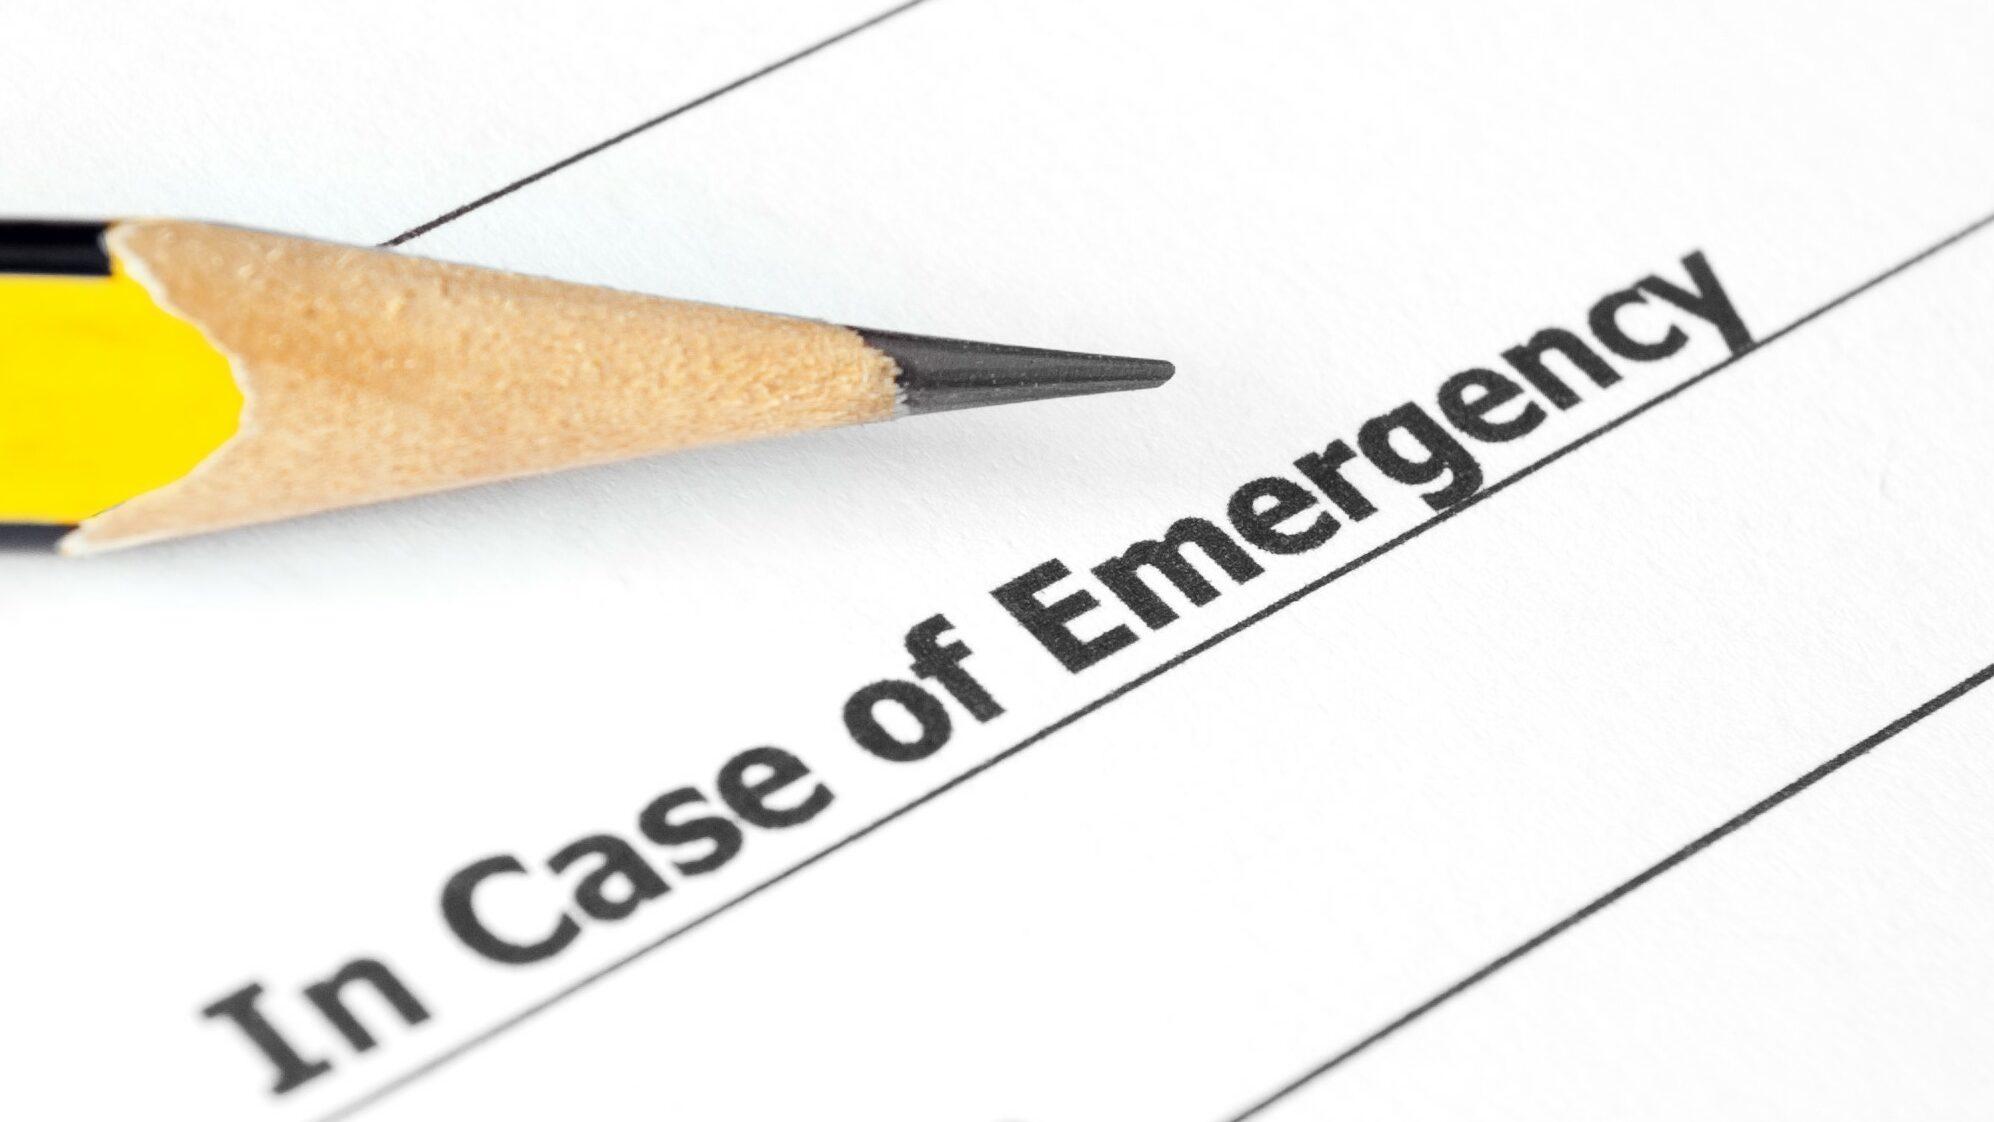 Close-up of Emergency document with pencil